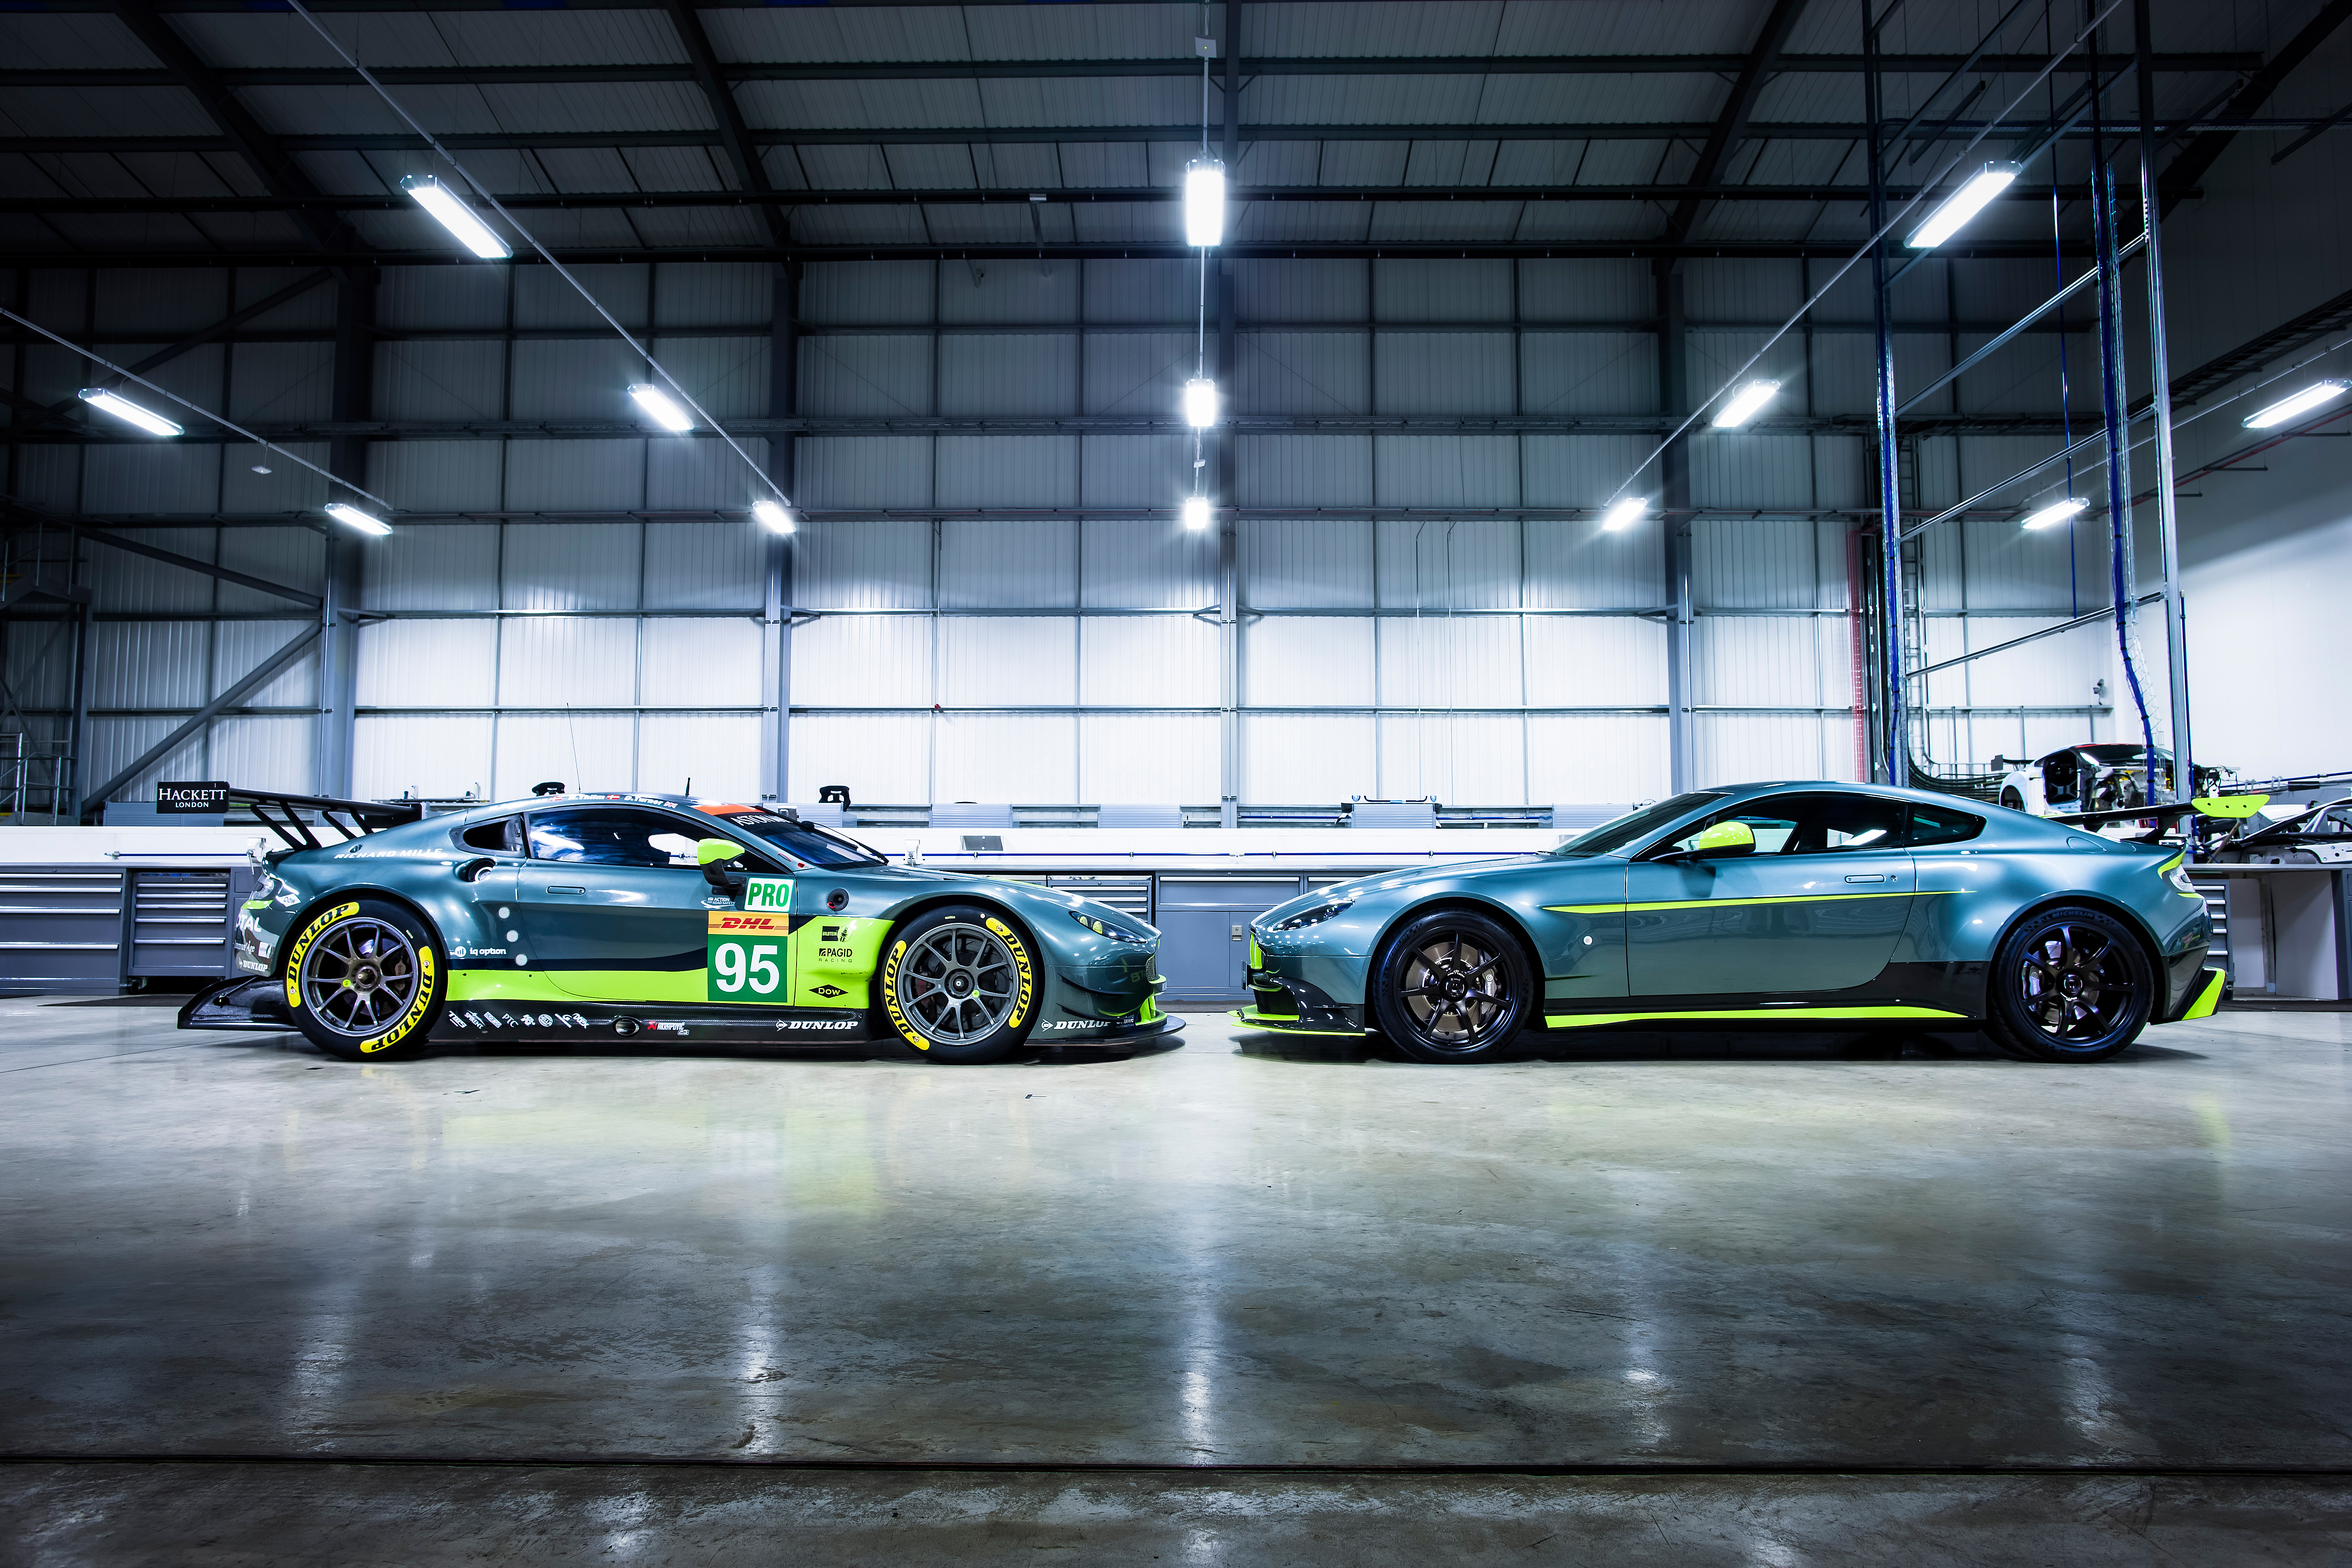 the magnificent aston martin vantage gt8 is a road-legal race car